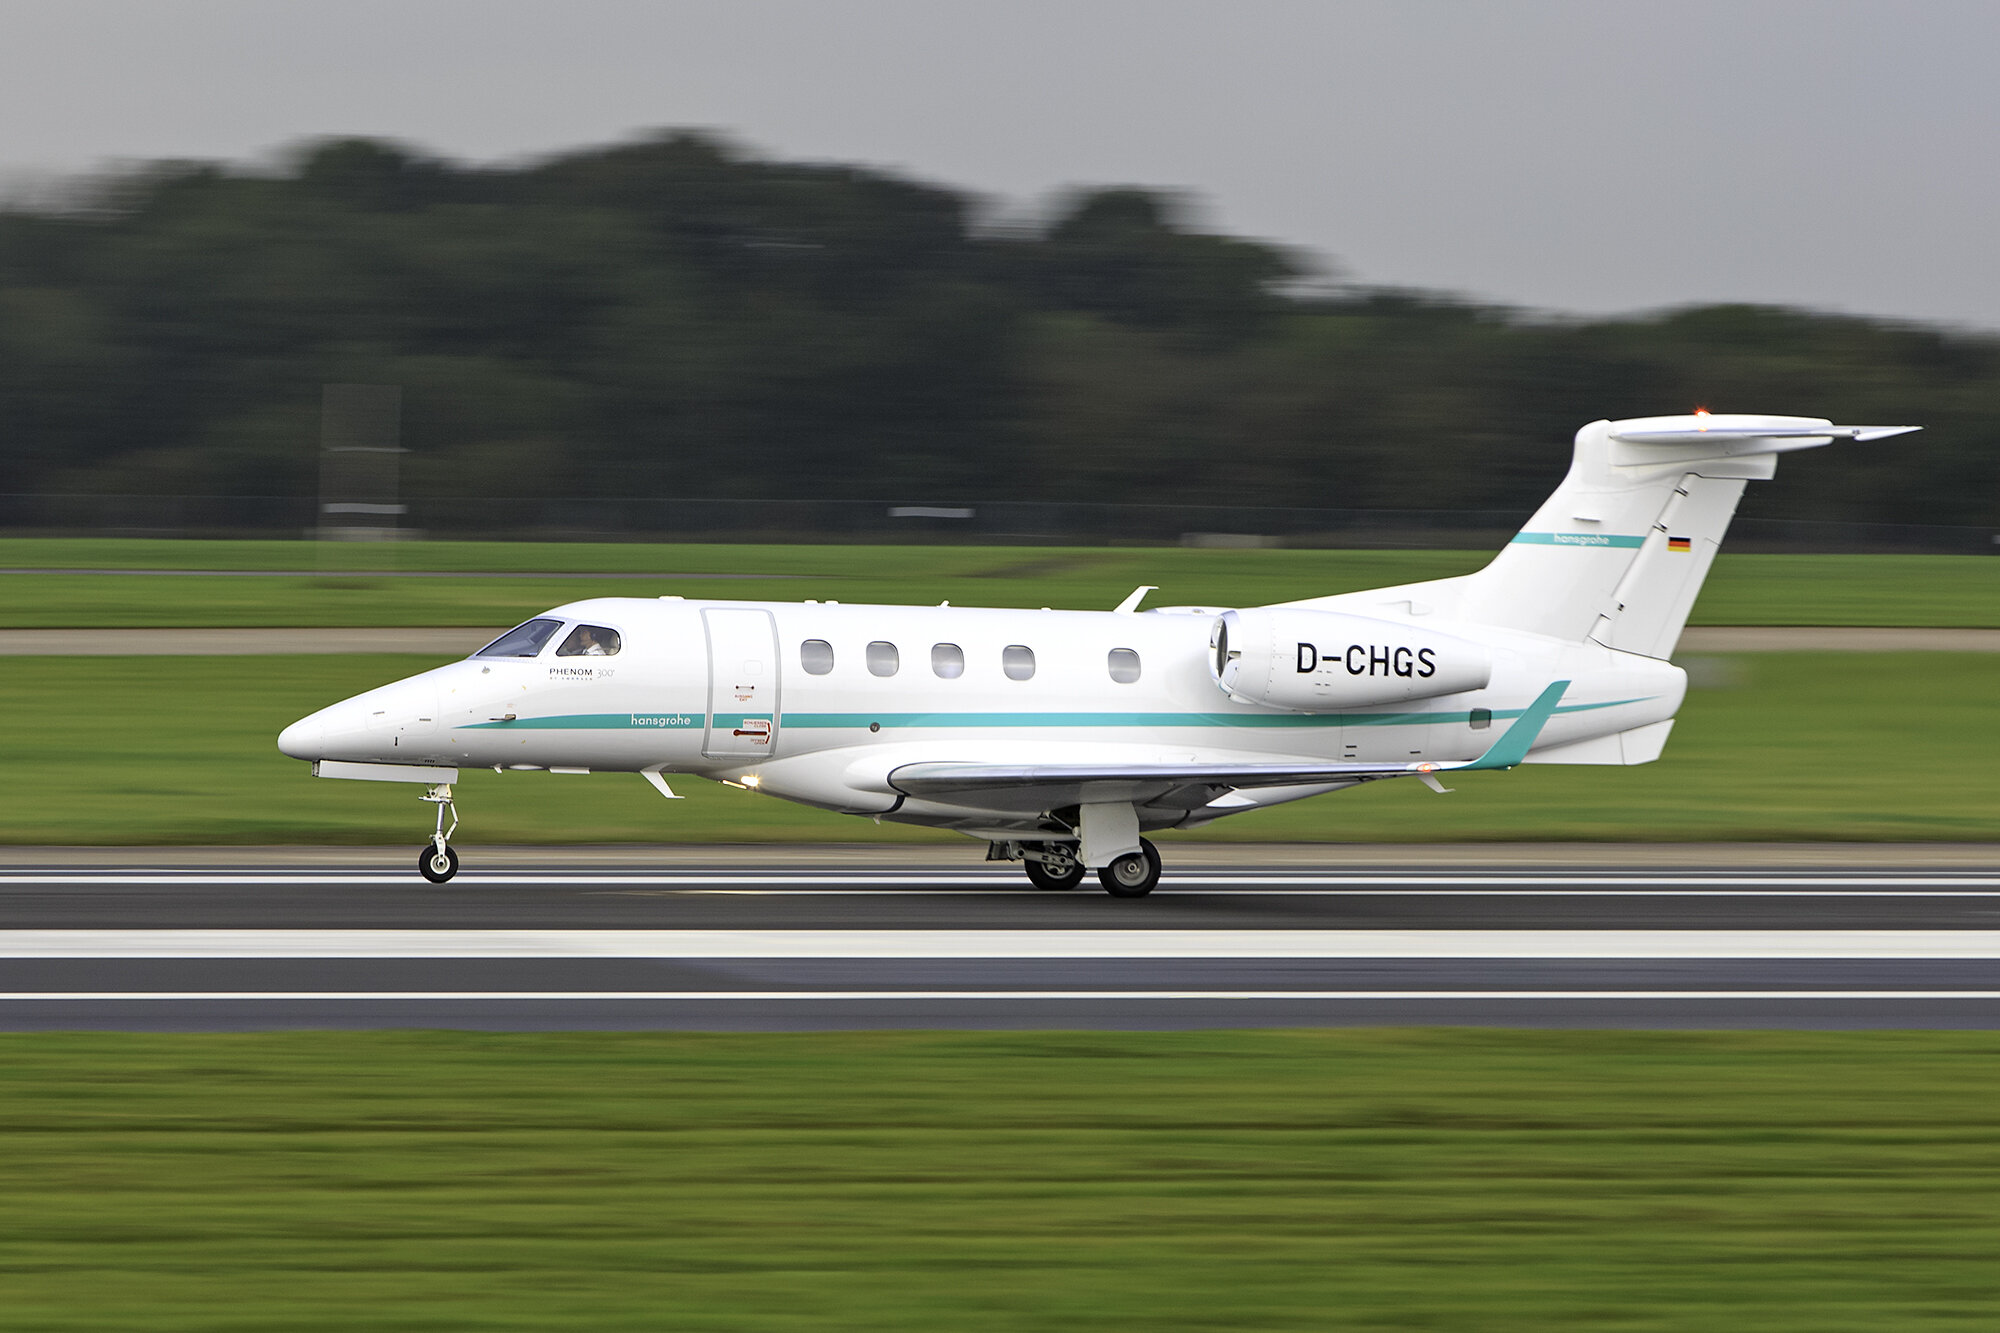 Embraer Phenom 300 D-CHGS departing on Runway 23 Left. 25th September 2019. Photo: Paul Bailey